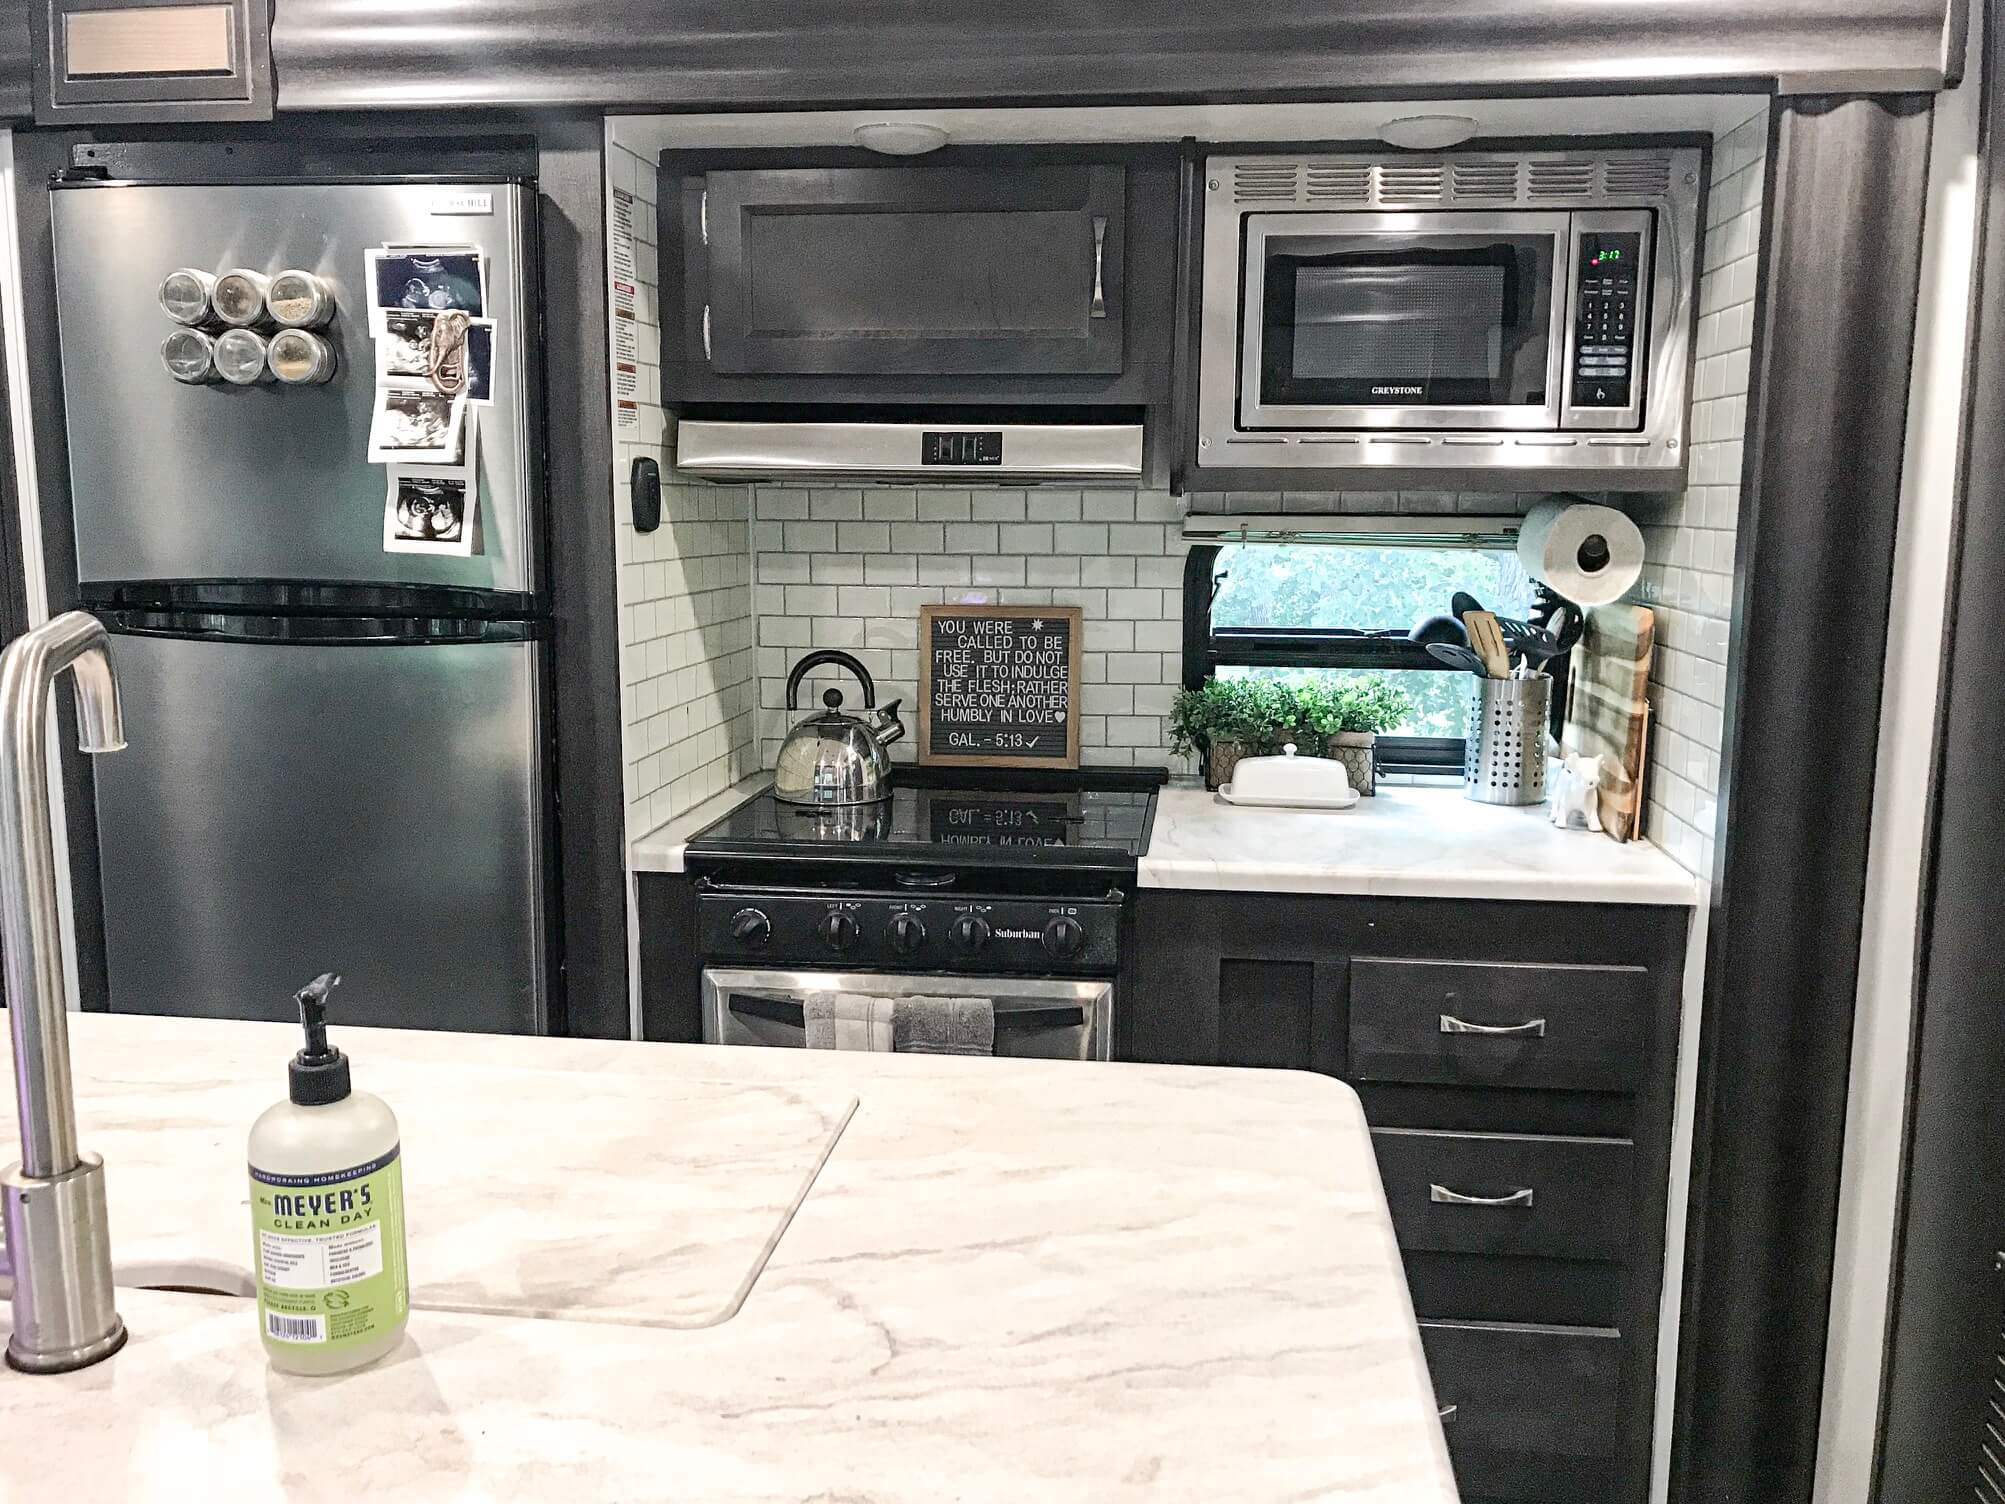 IMG 7114 2 - RV Remodel : How To Use TIC TAC TILE To Upgrade Your RV Kitchen